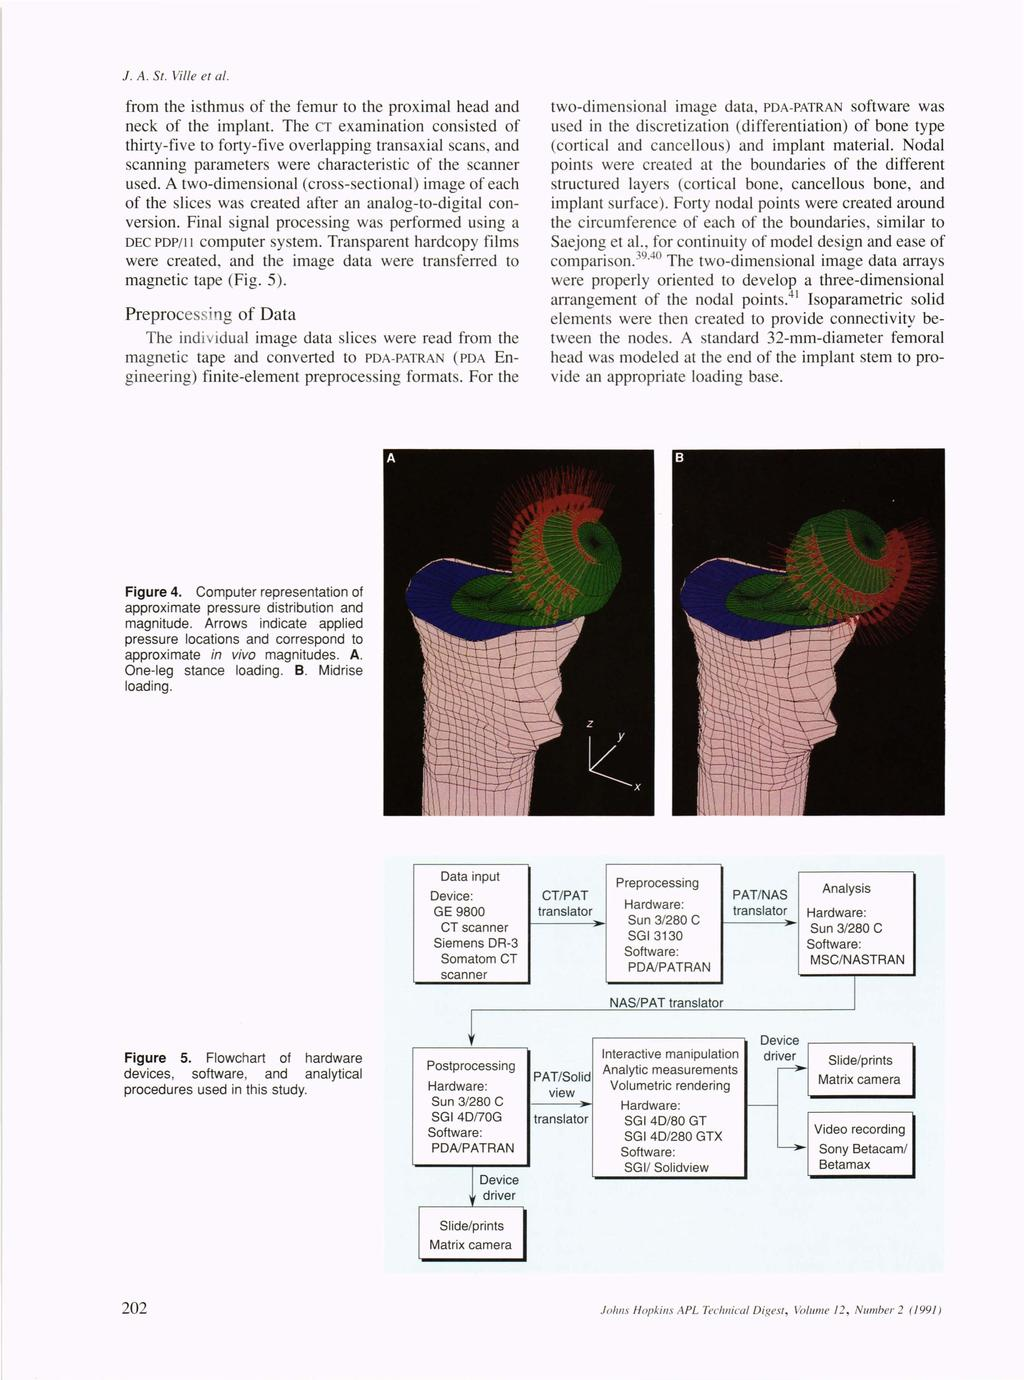 The Anatomy Of Midthigh Pain After Total Hip Arthroplasty Pdf Wiring Gt Tools For Testers Circuit Tester Hopkins 1 A St Ville Et 01 From Isthmus Femur